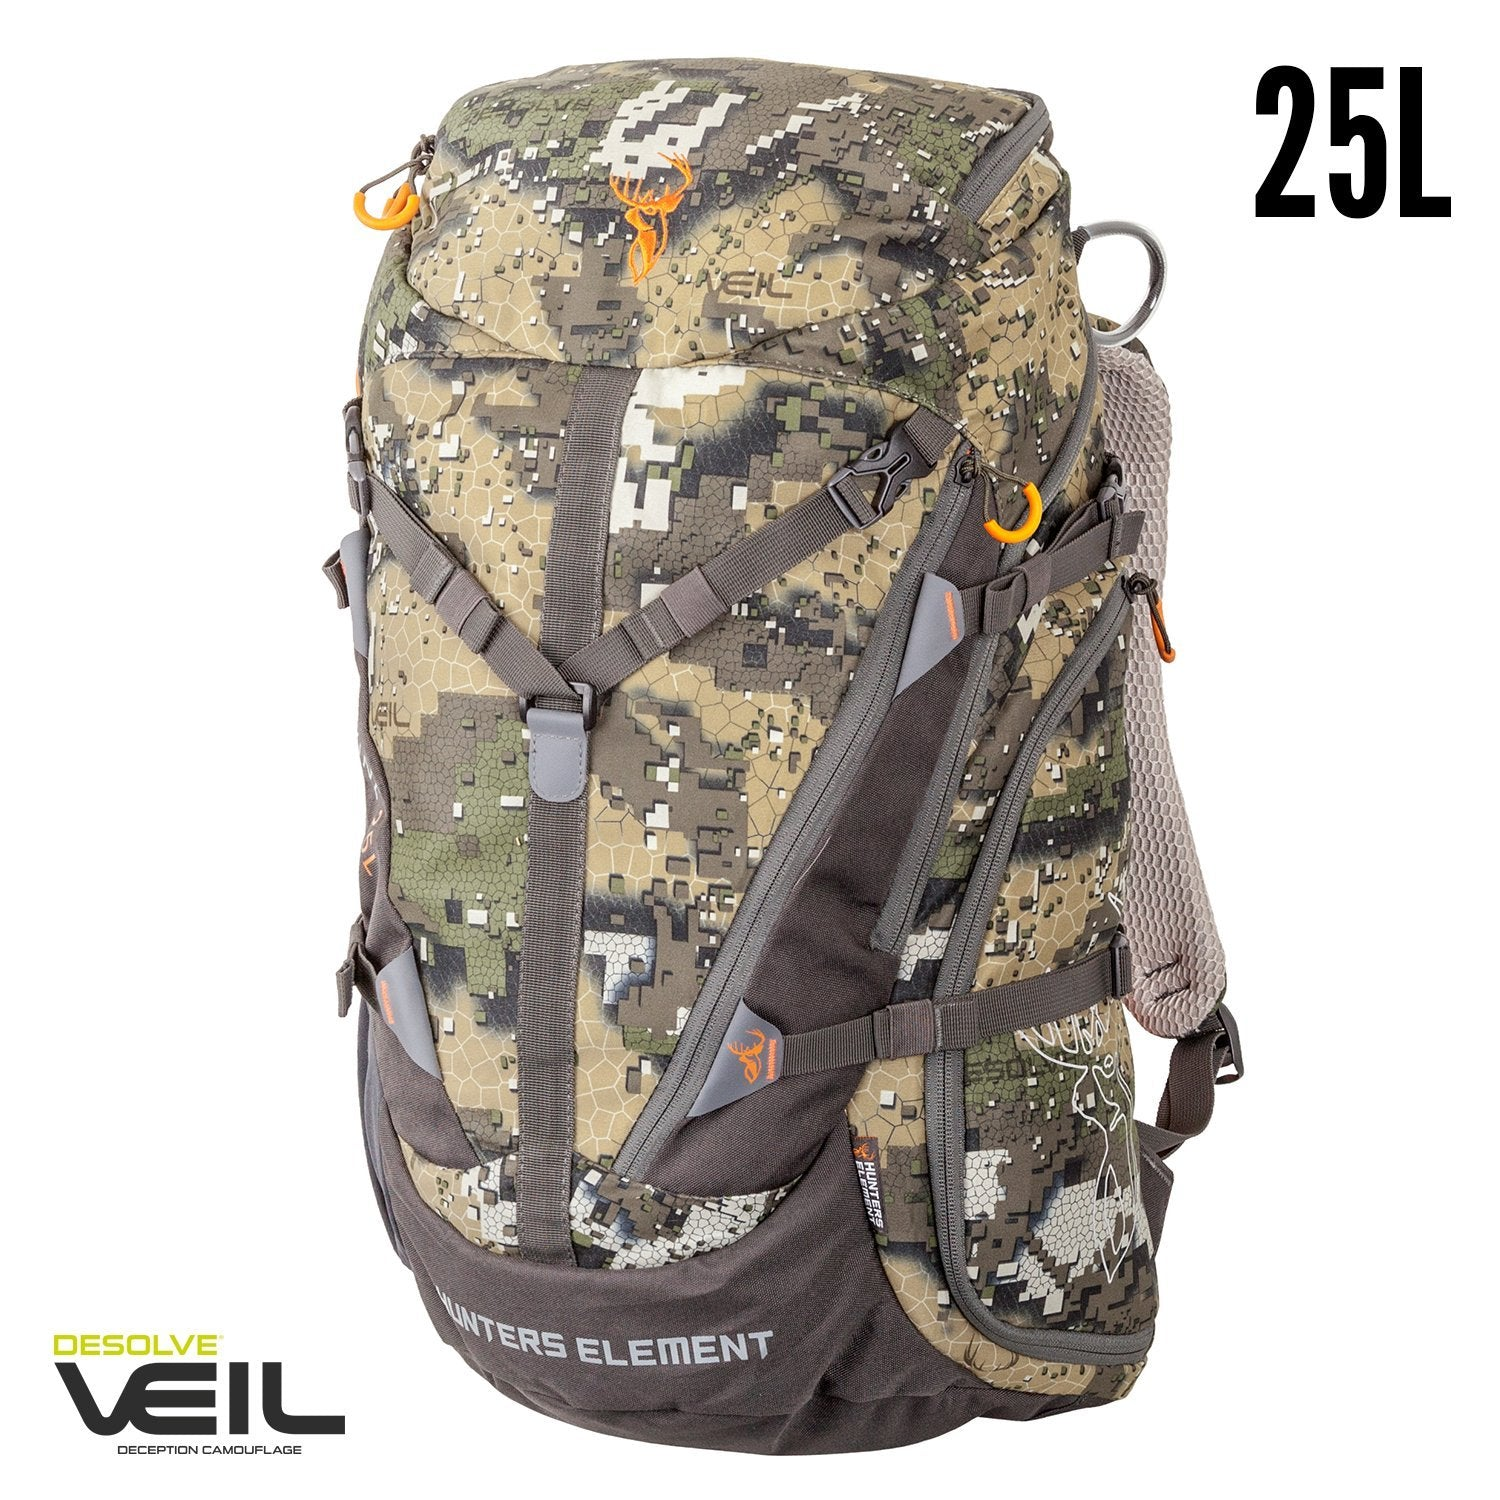 Hunters Element Canyon Pack - Veil Camo